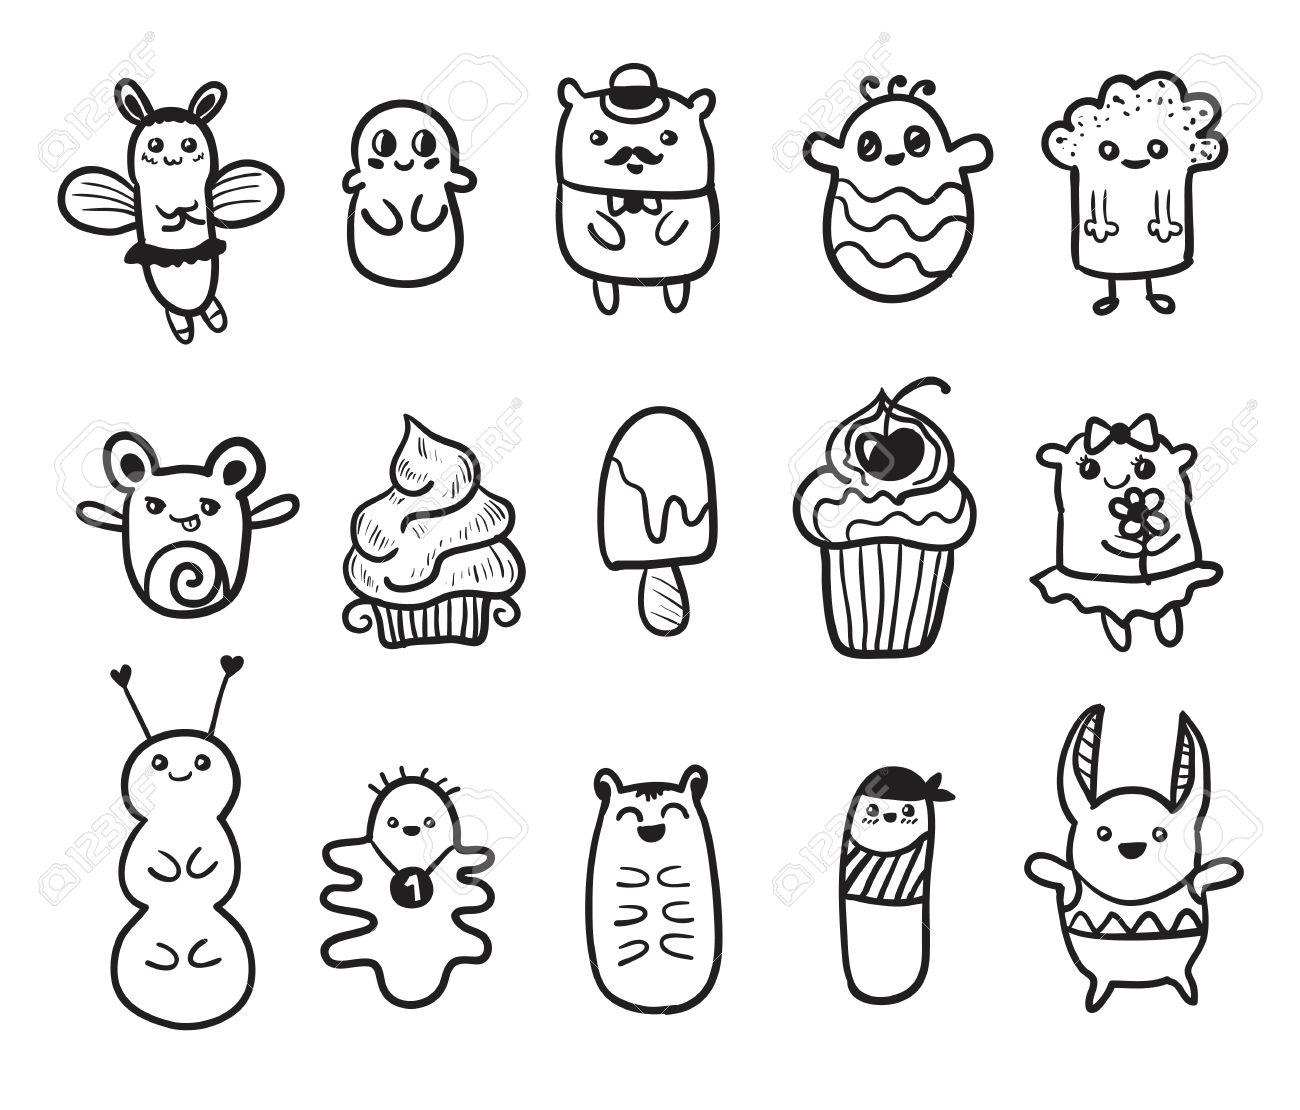 doodle vector illustration with animals funny monsters graffiti